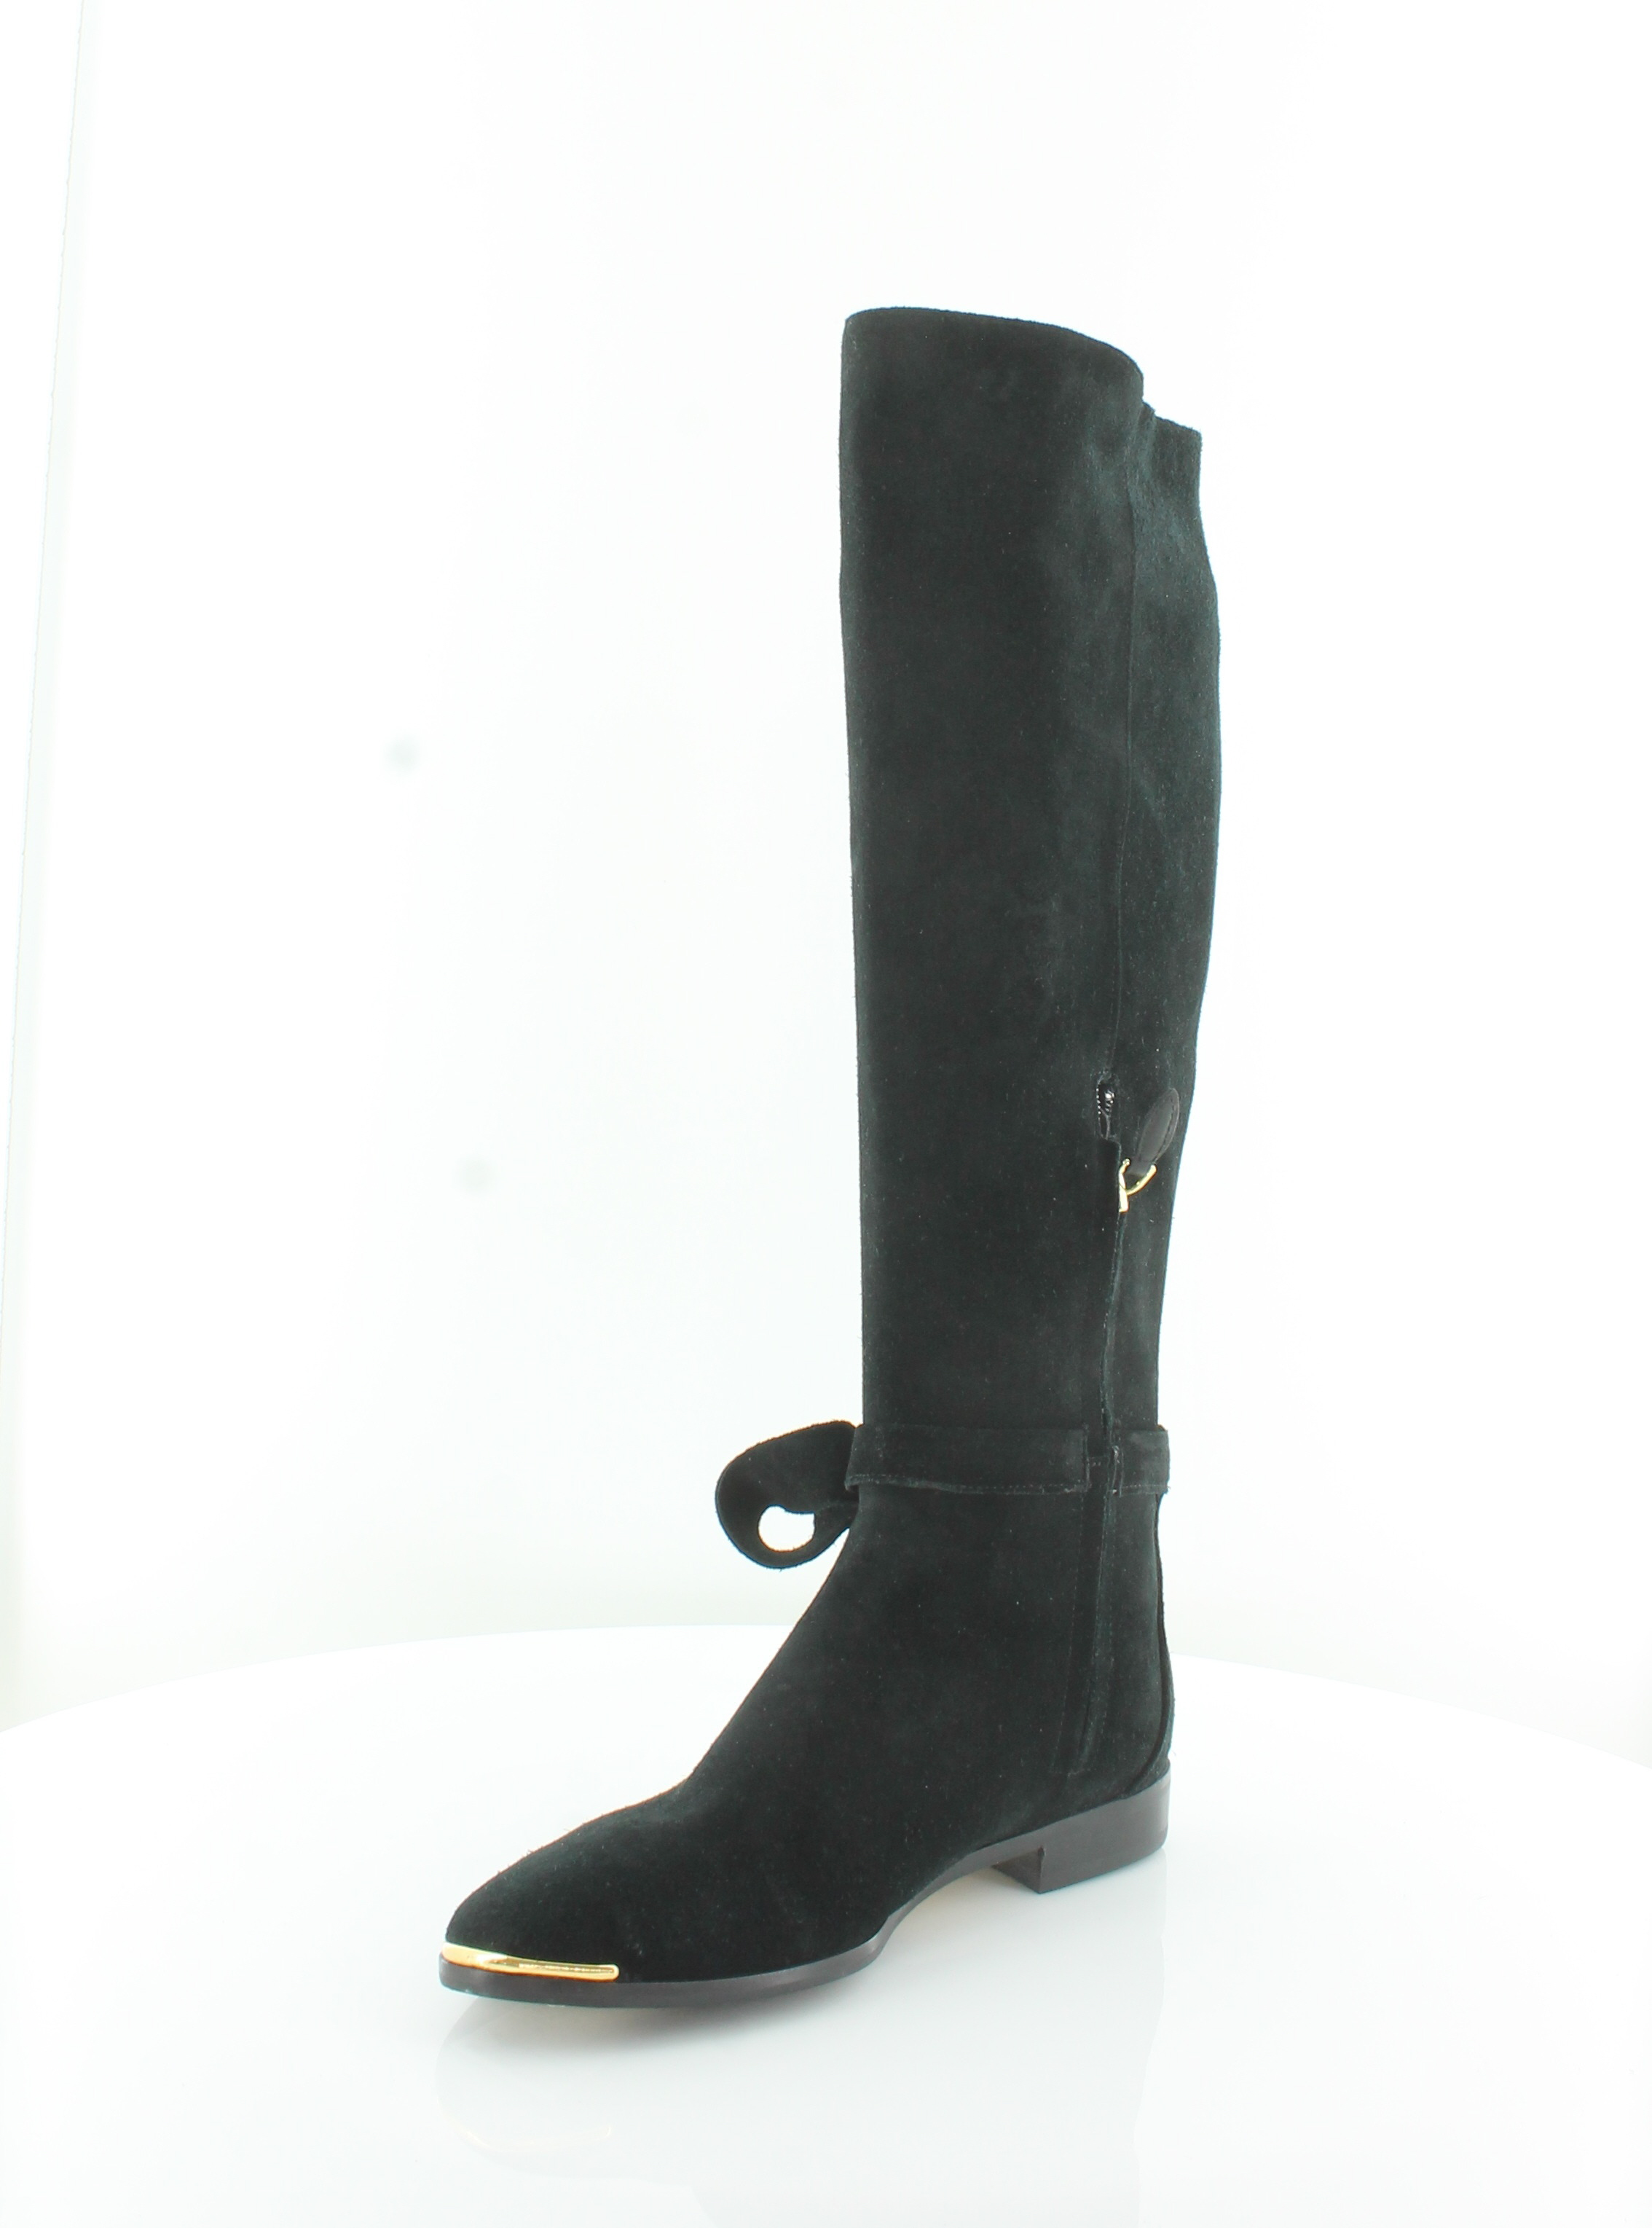 Ted Baker Alramib Black Womens shoes Size 7 7 7 M Boots MSRP  365 6972c8